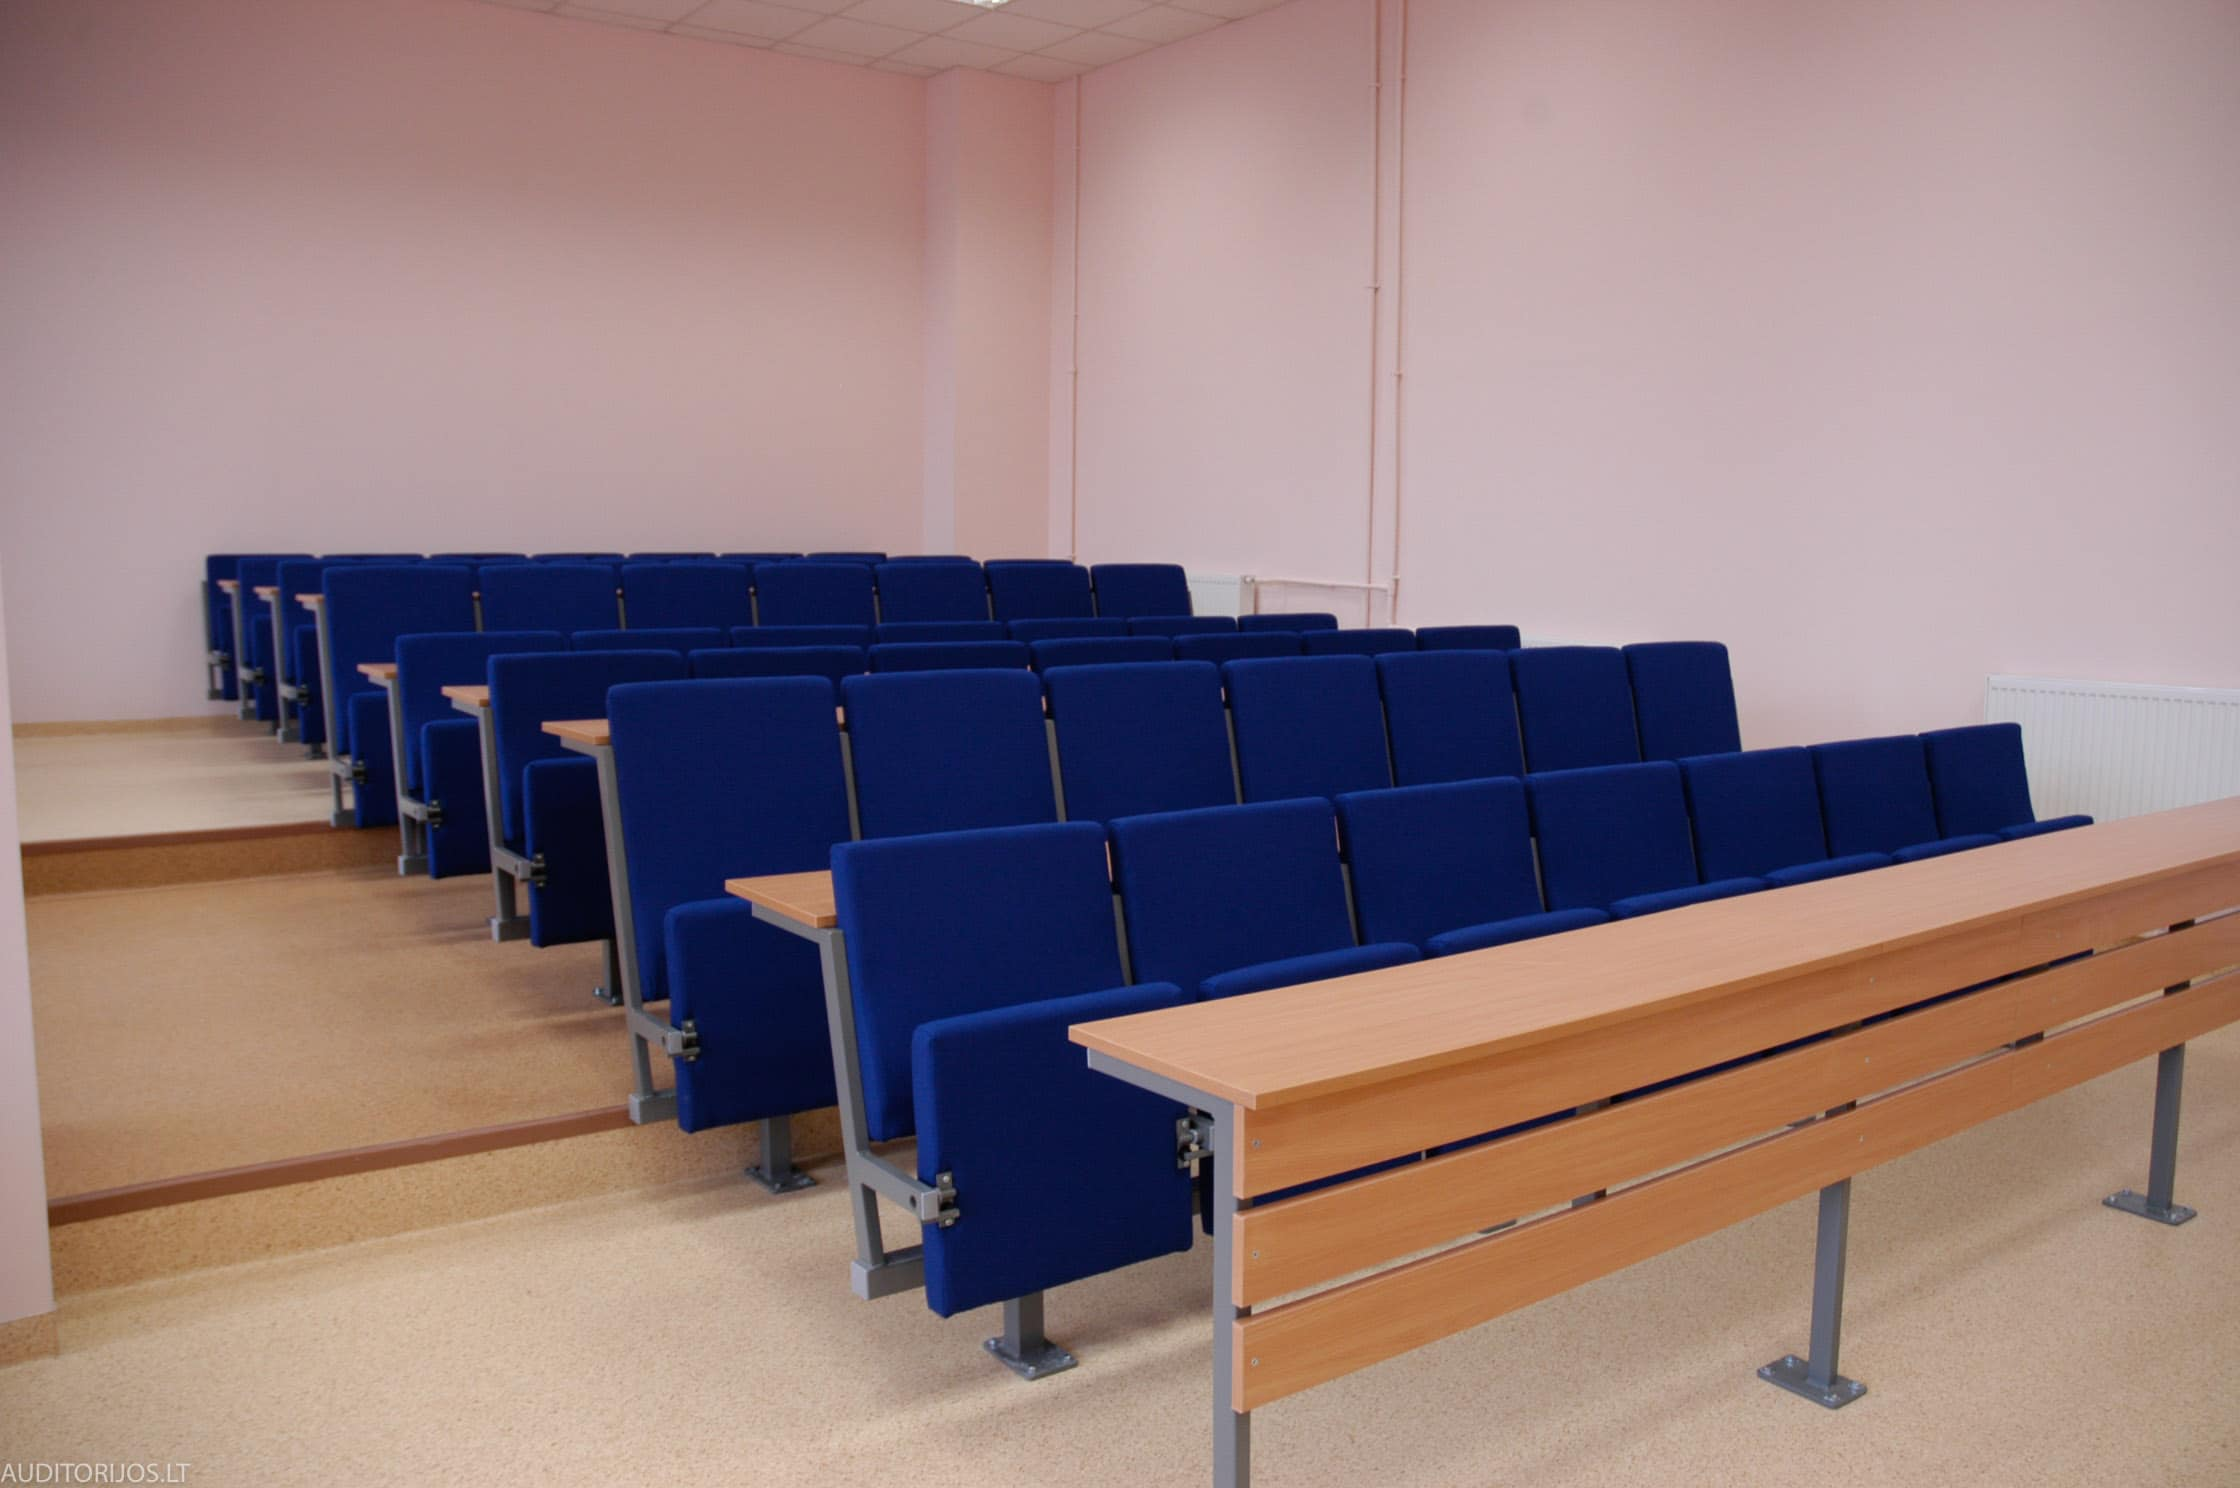 VVK Lecture Seating chairsDSC_0350